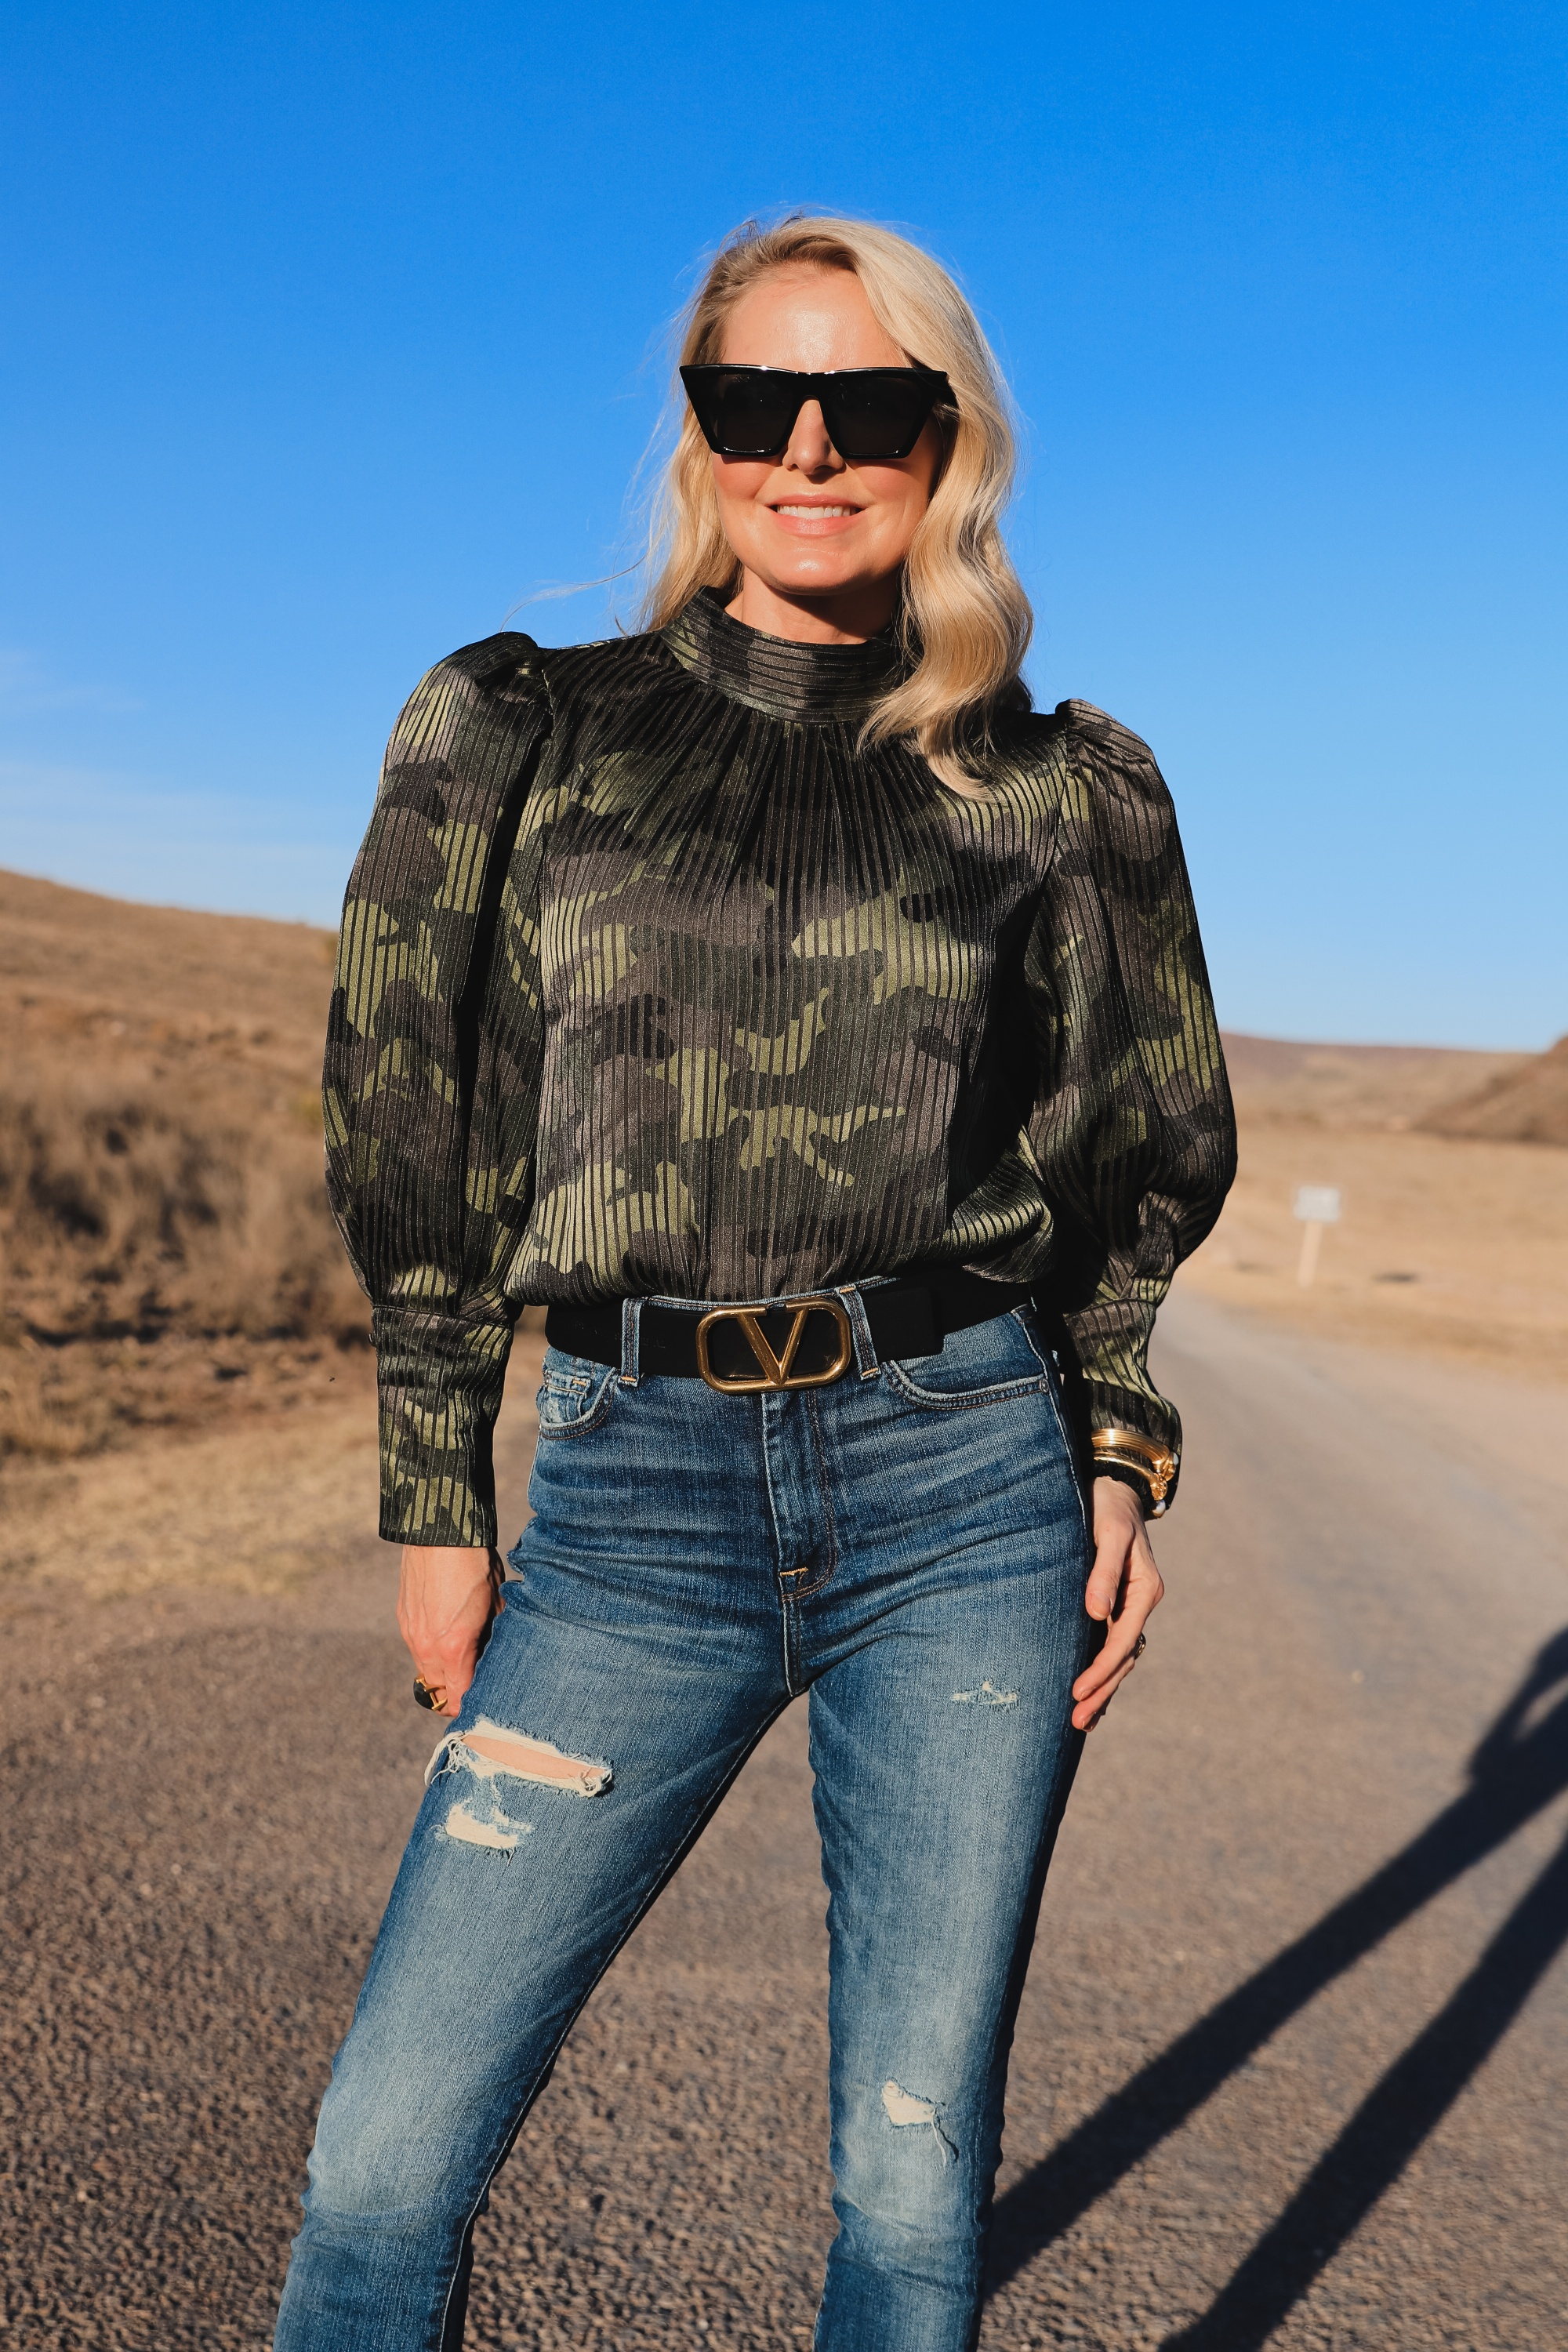 How To Mix Styles, Blogger Over 40 Erin Busbee of Busbee Style wearing a camo puff sleeve top by Alice + Olivia with 7 for All Mankind ripped skinny jeans, Alexander Wang cutout heel booties, black cat eye sunglasses, gold julie vos cuff bracelets, monica vinader diamond ring, and dean davidson cocktail ring in west Texas